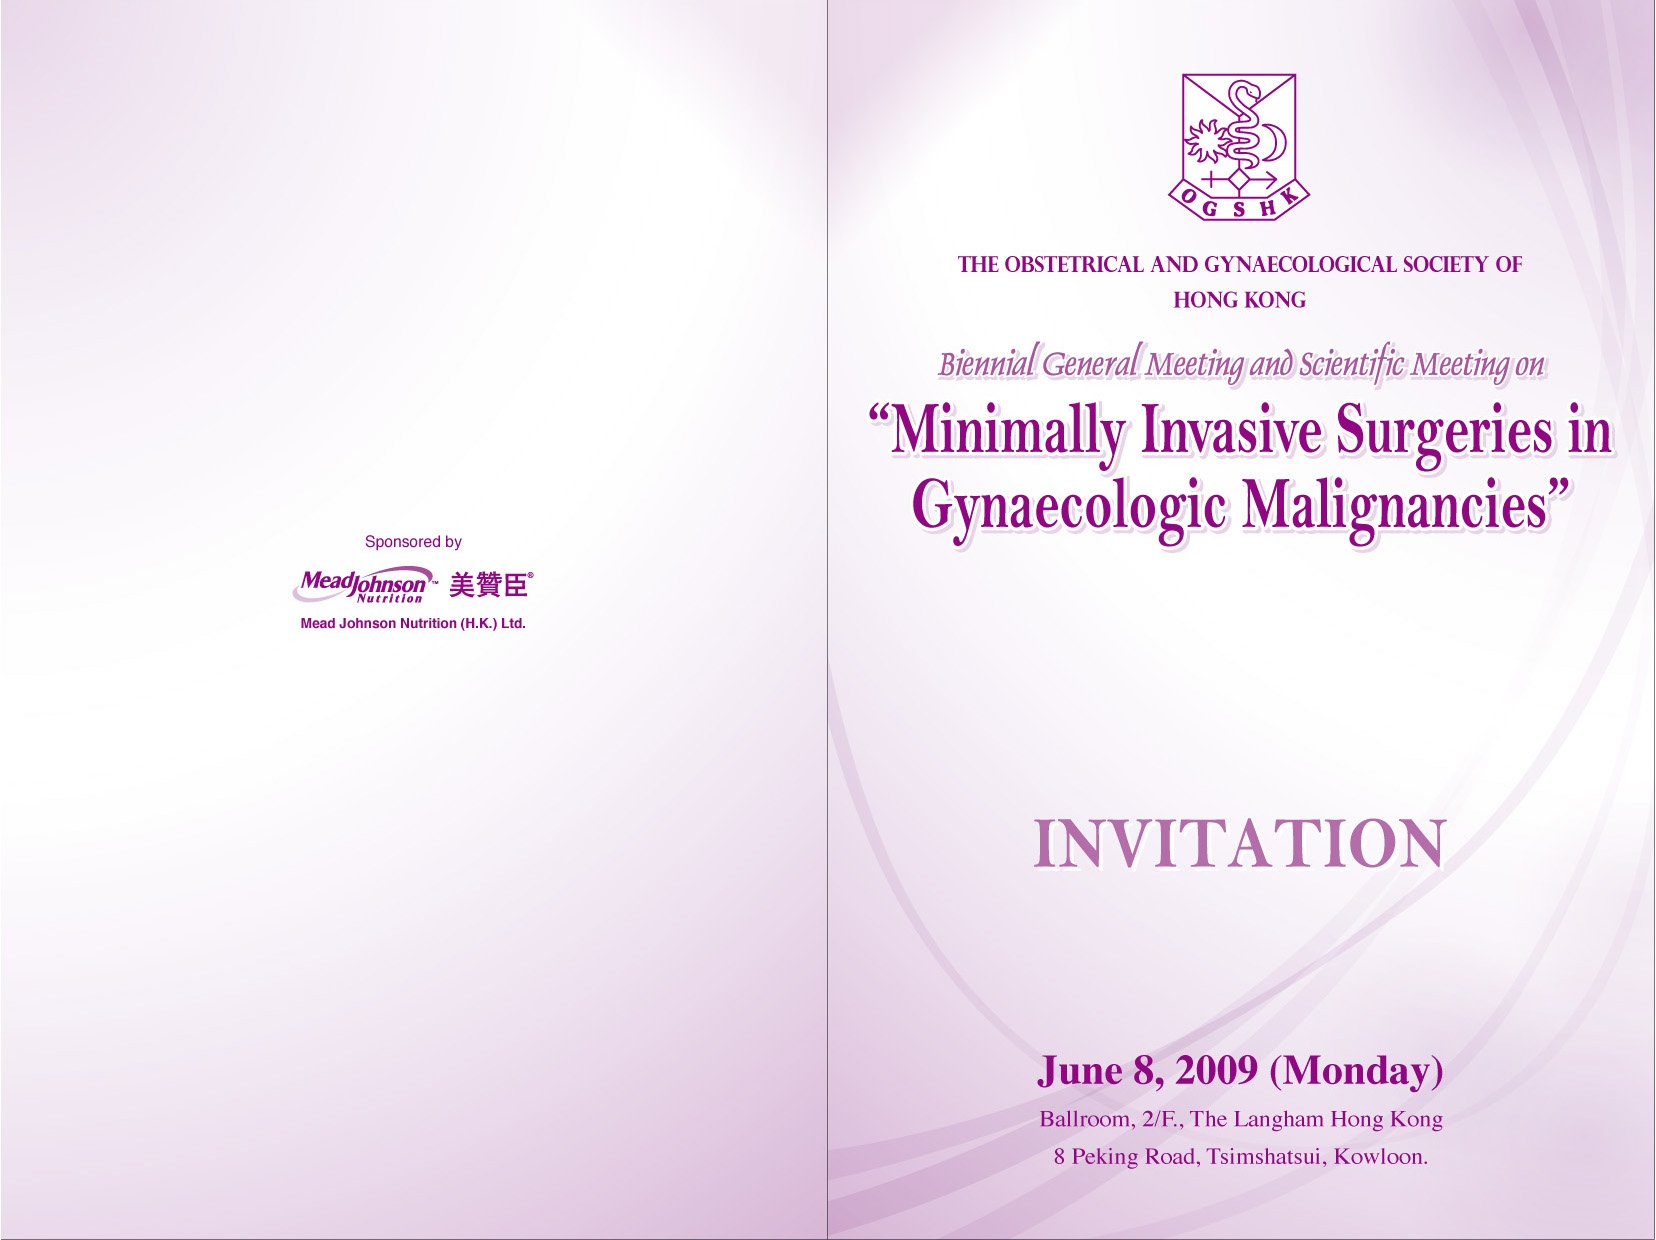 Minimally invasive surgeries in gynaecologic malignancies invitation card cover reply slip stopboris Choice Image